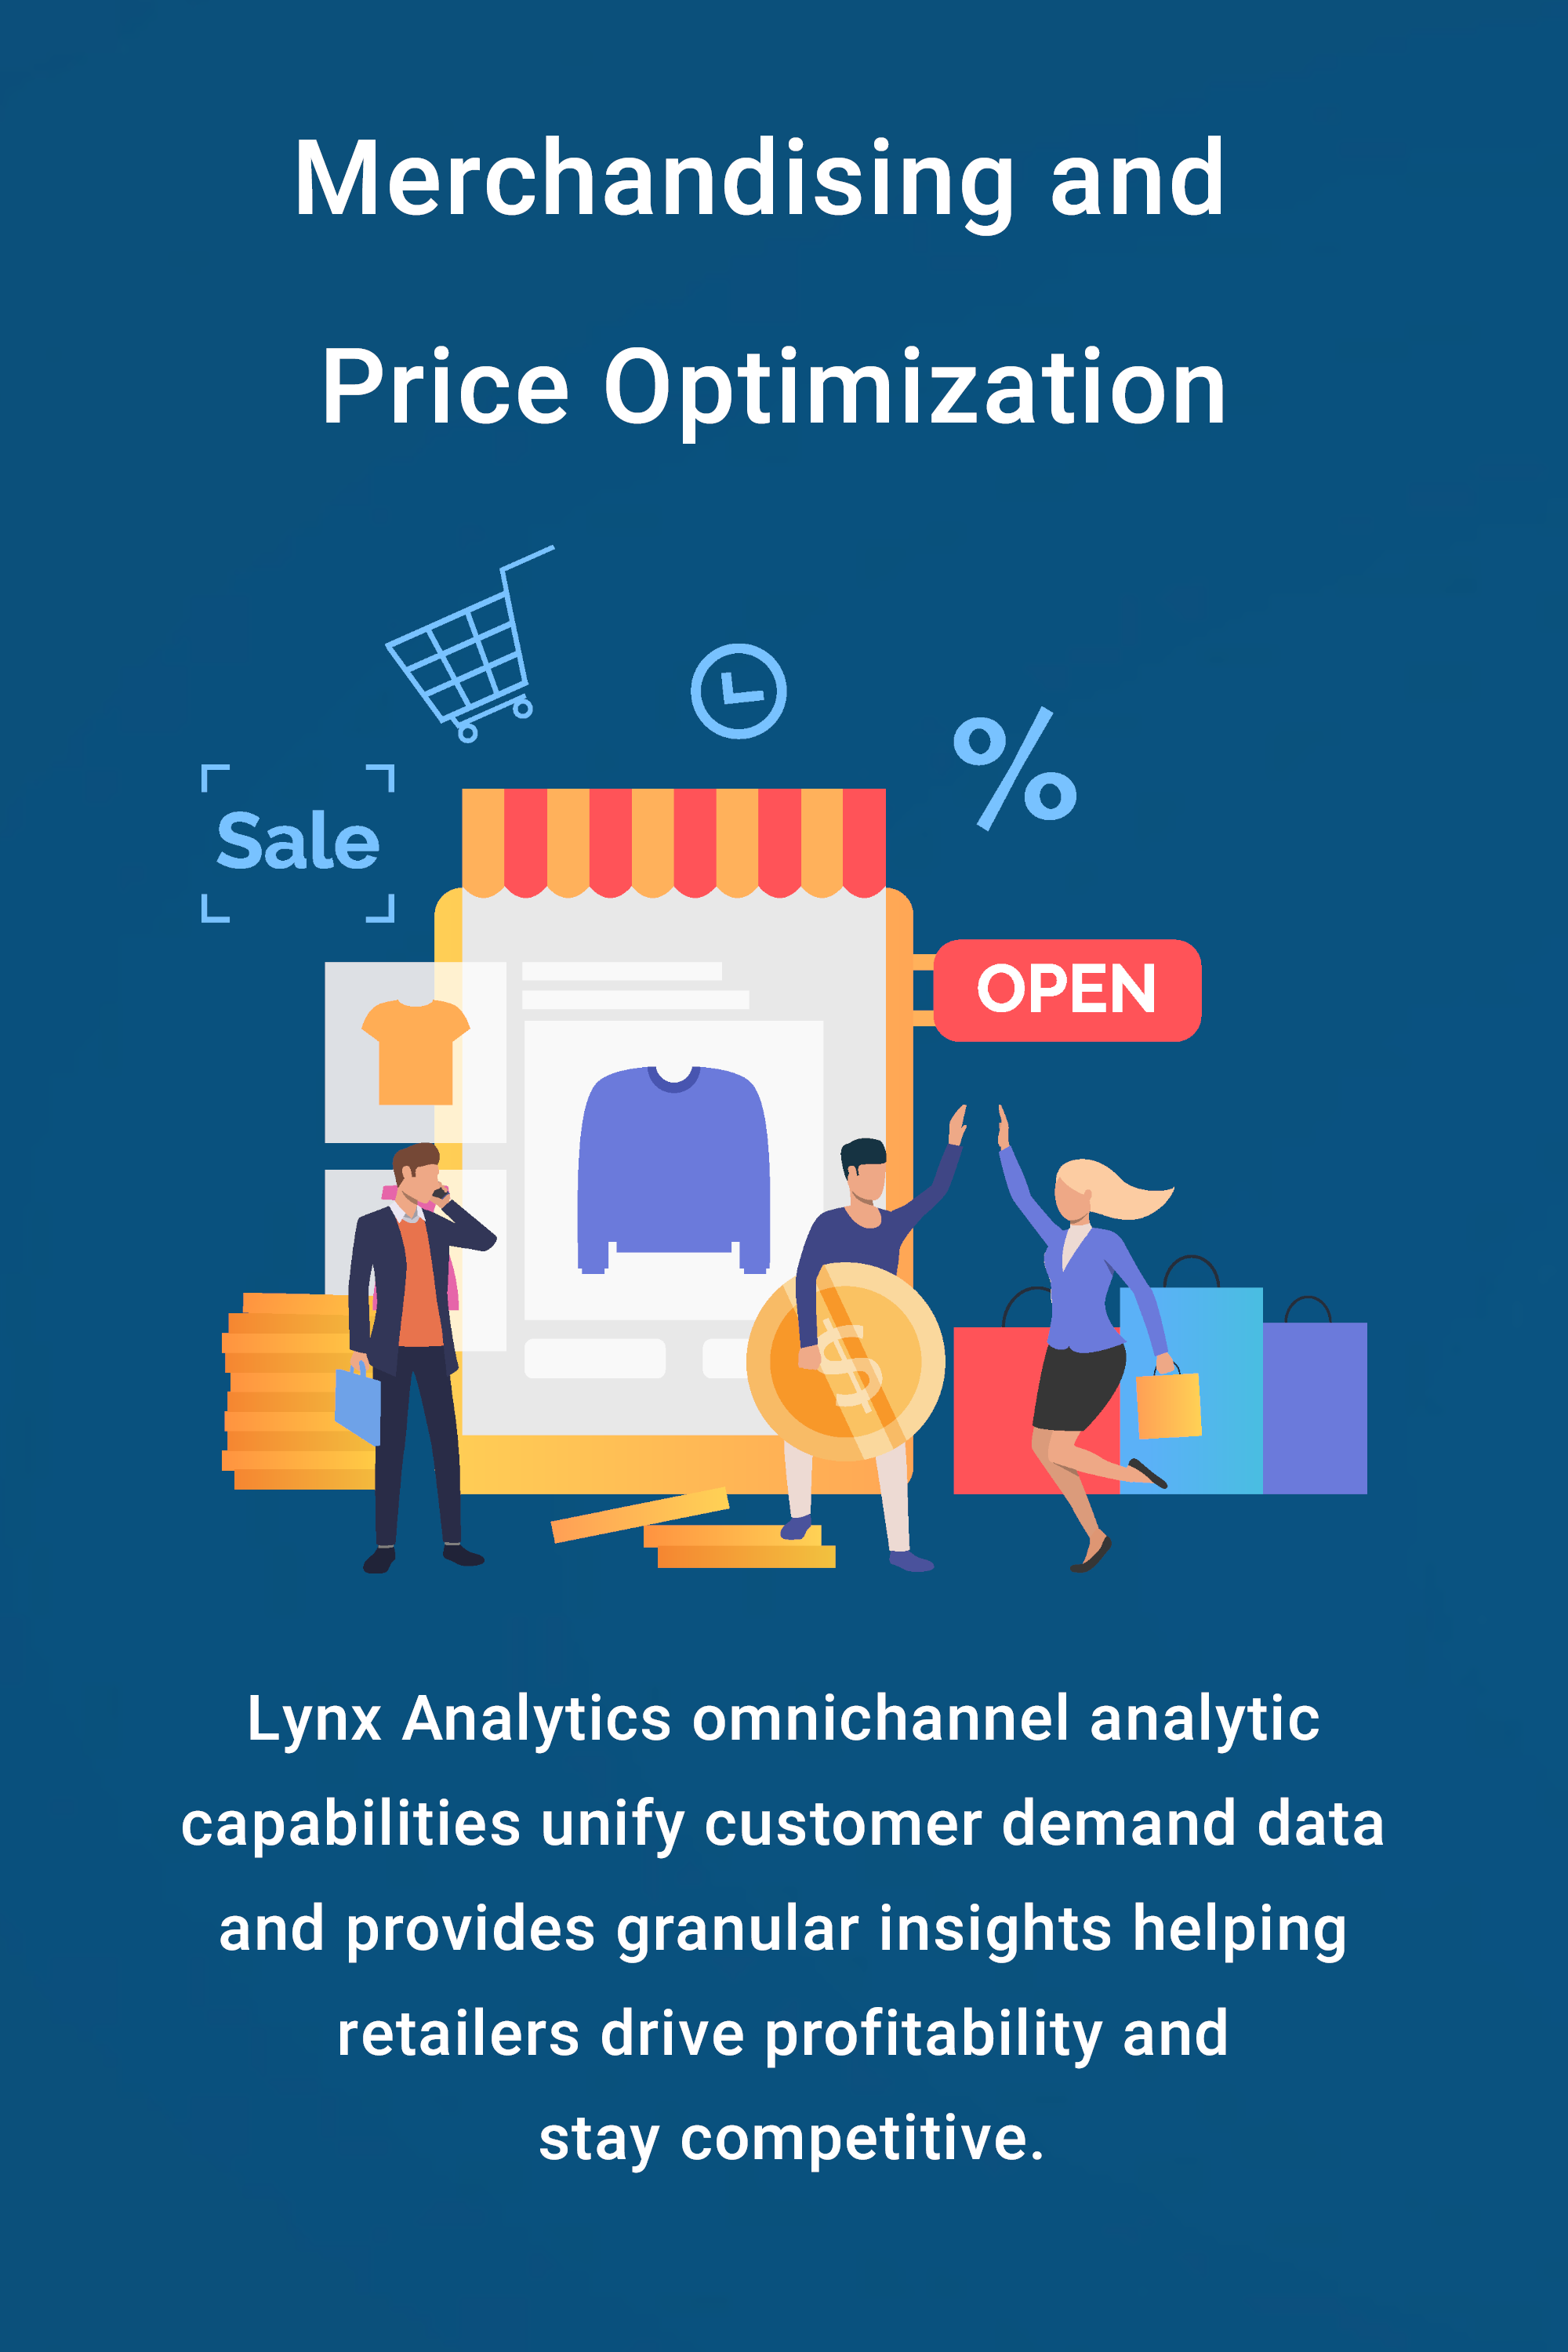 Lynx Analytics omnichannel analytic capabilities unify customer  demand data and provides granular insights helping retailers drive  profitability and stay competitive_mobile